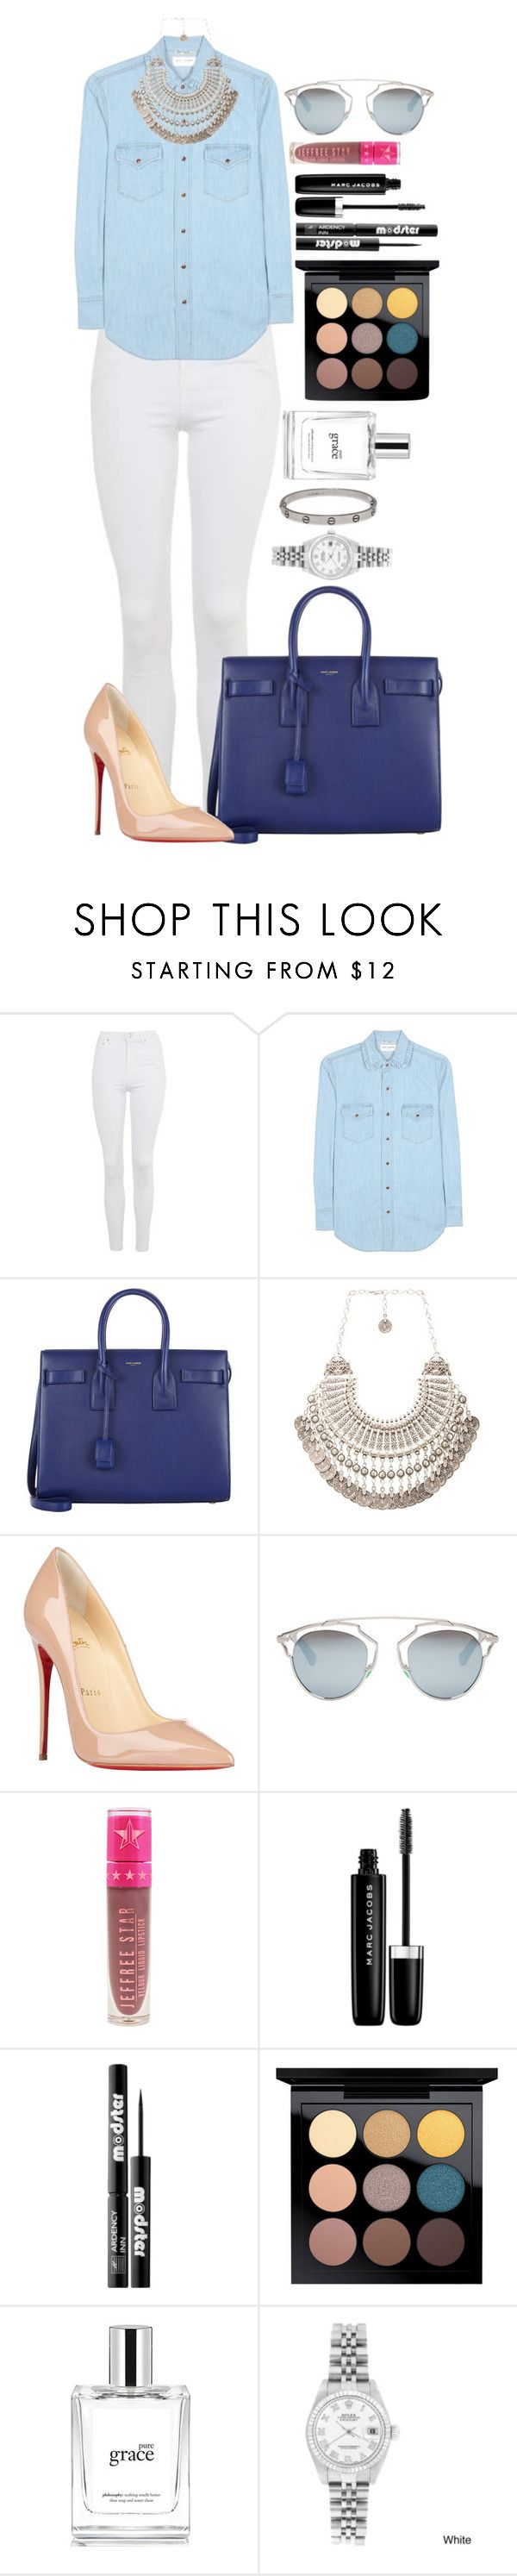 """Untitled #1500"" by fabianarveloc on Polyvore featuring Topshop, Yves Saint Laurent, Natalie B, Christian Louboutin, Christian Dior, Jeffree Star, Marc Jacobs, Ardency Inn, MAC Cosmetics and philosophy"